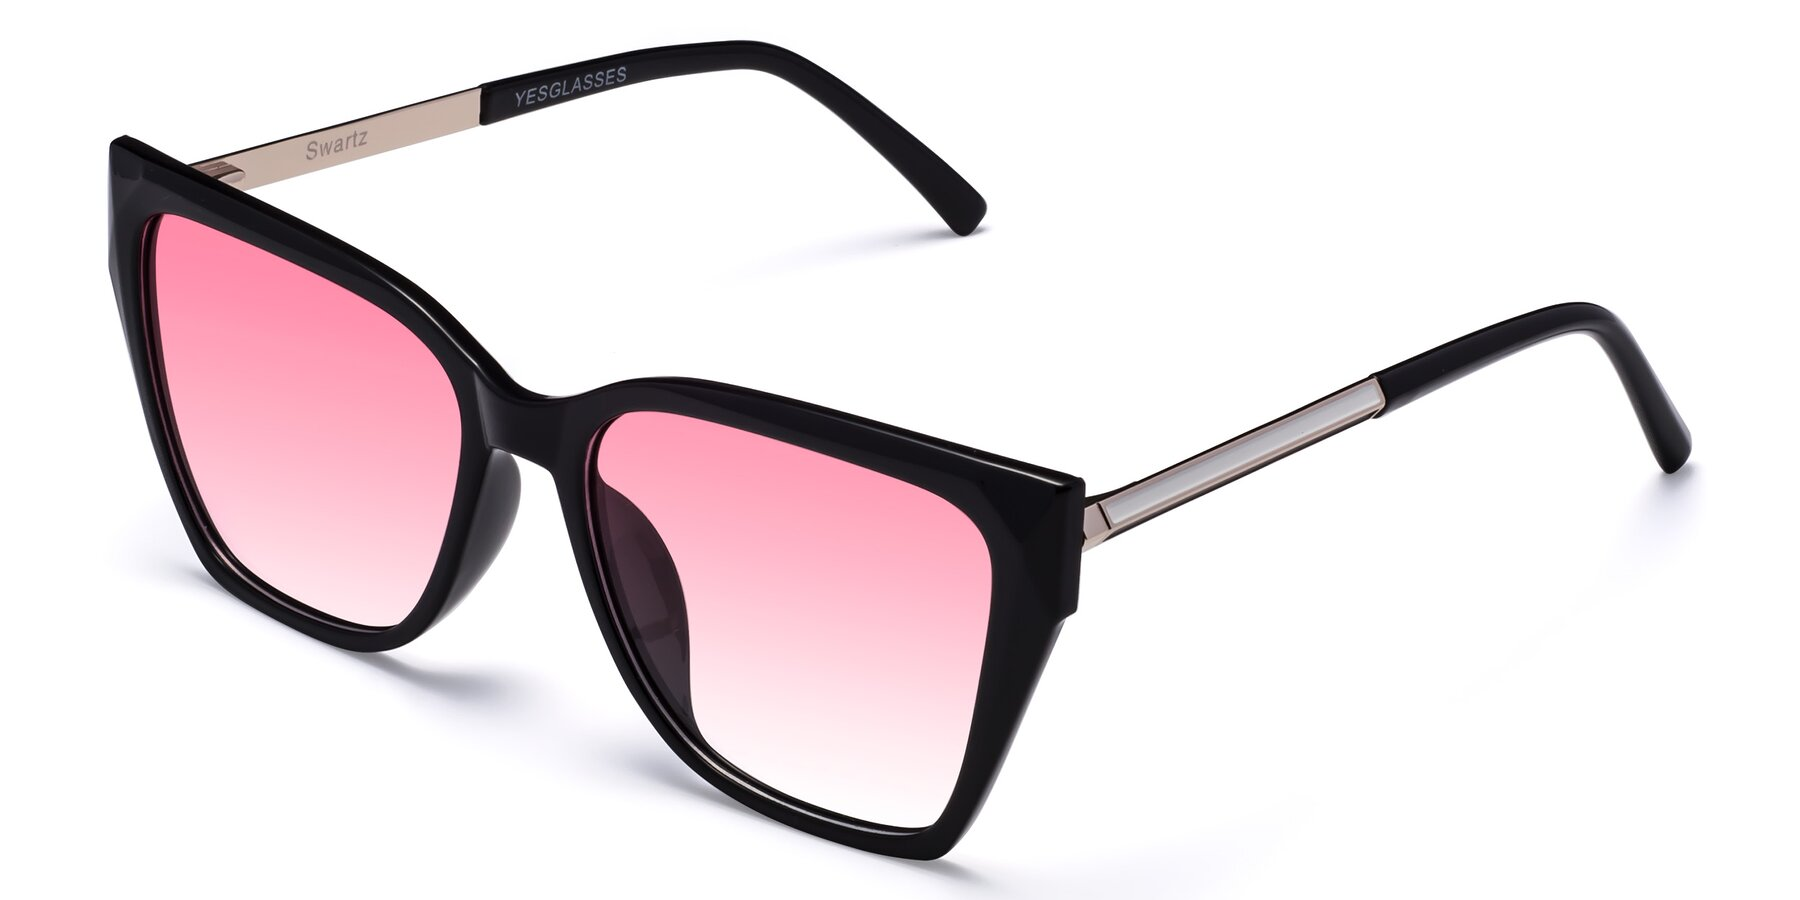 Angle of Swartz in Black with Pink Gradient Lenses